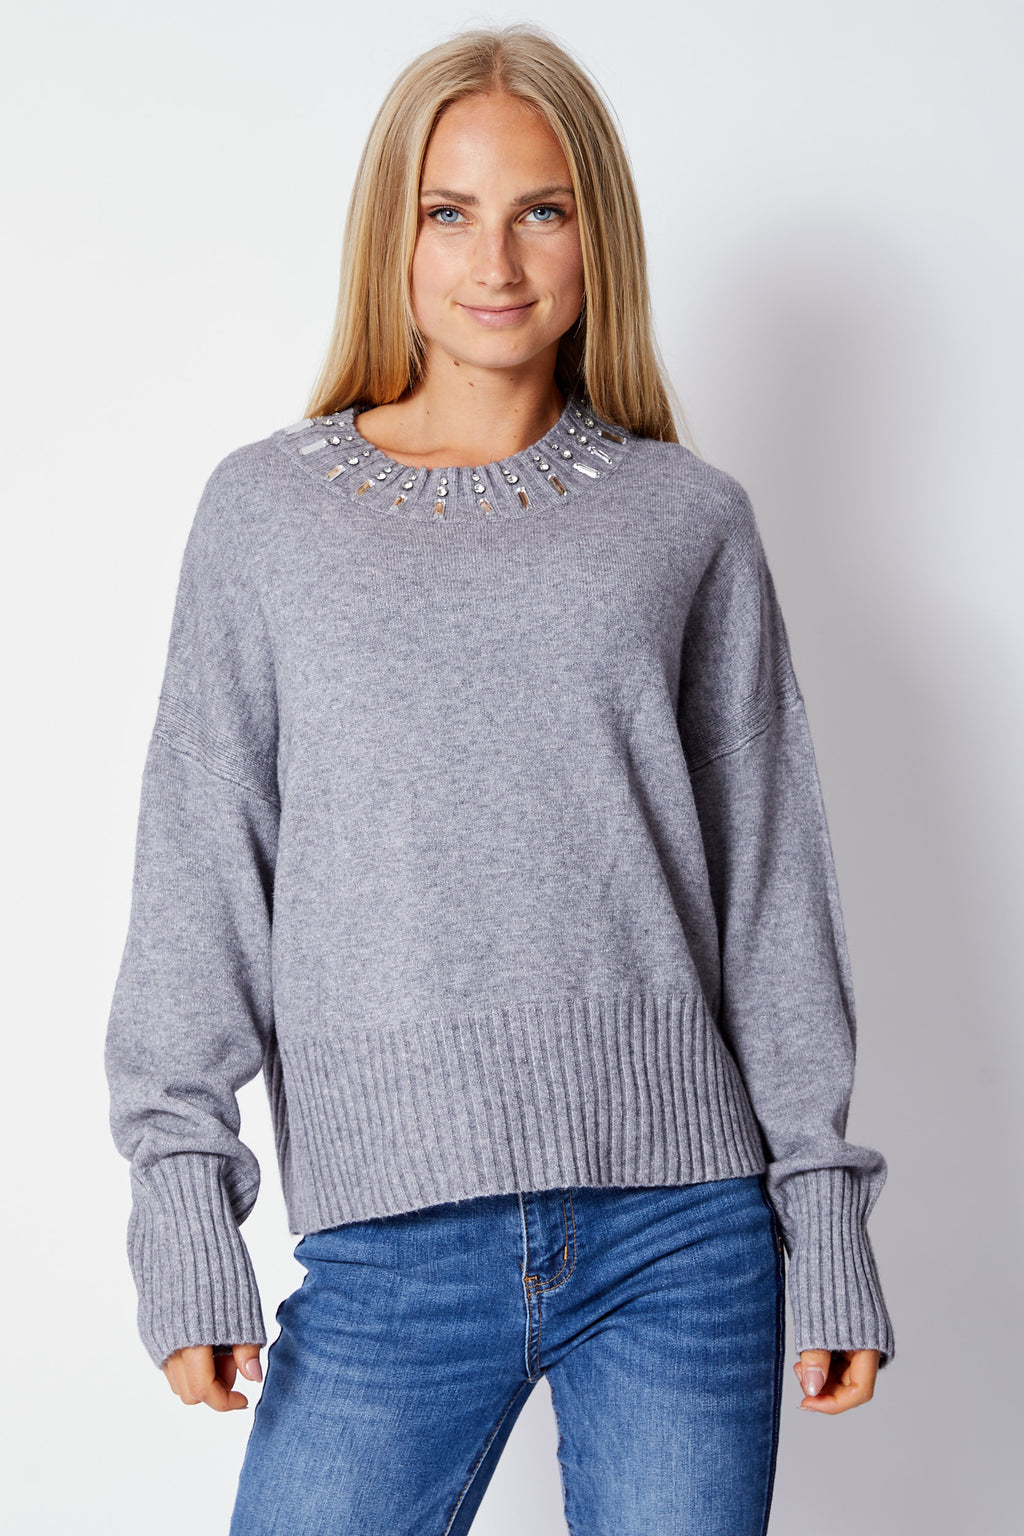 Gray Sweater w/ Rhinestone Collar - Jacqueline B Clothing